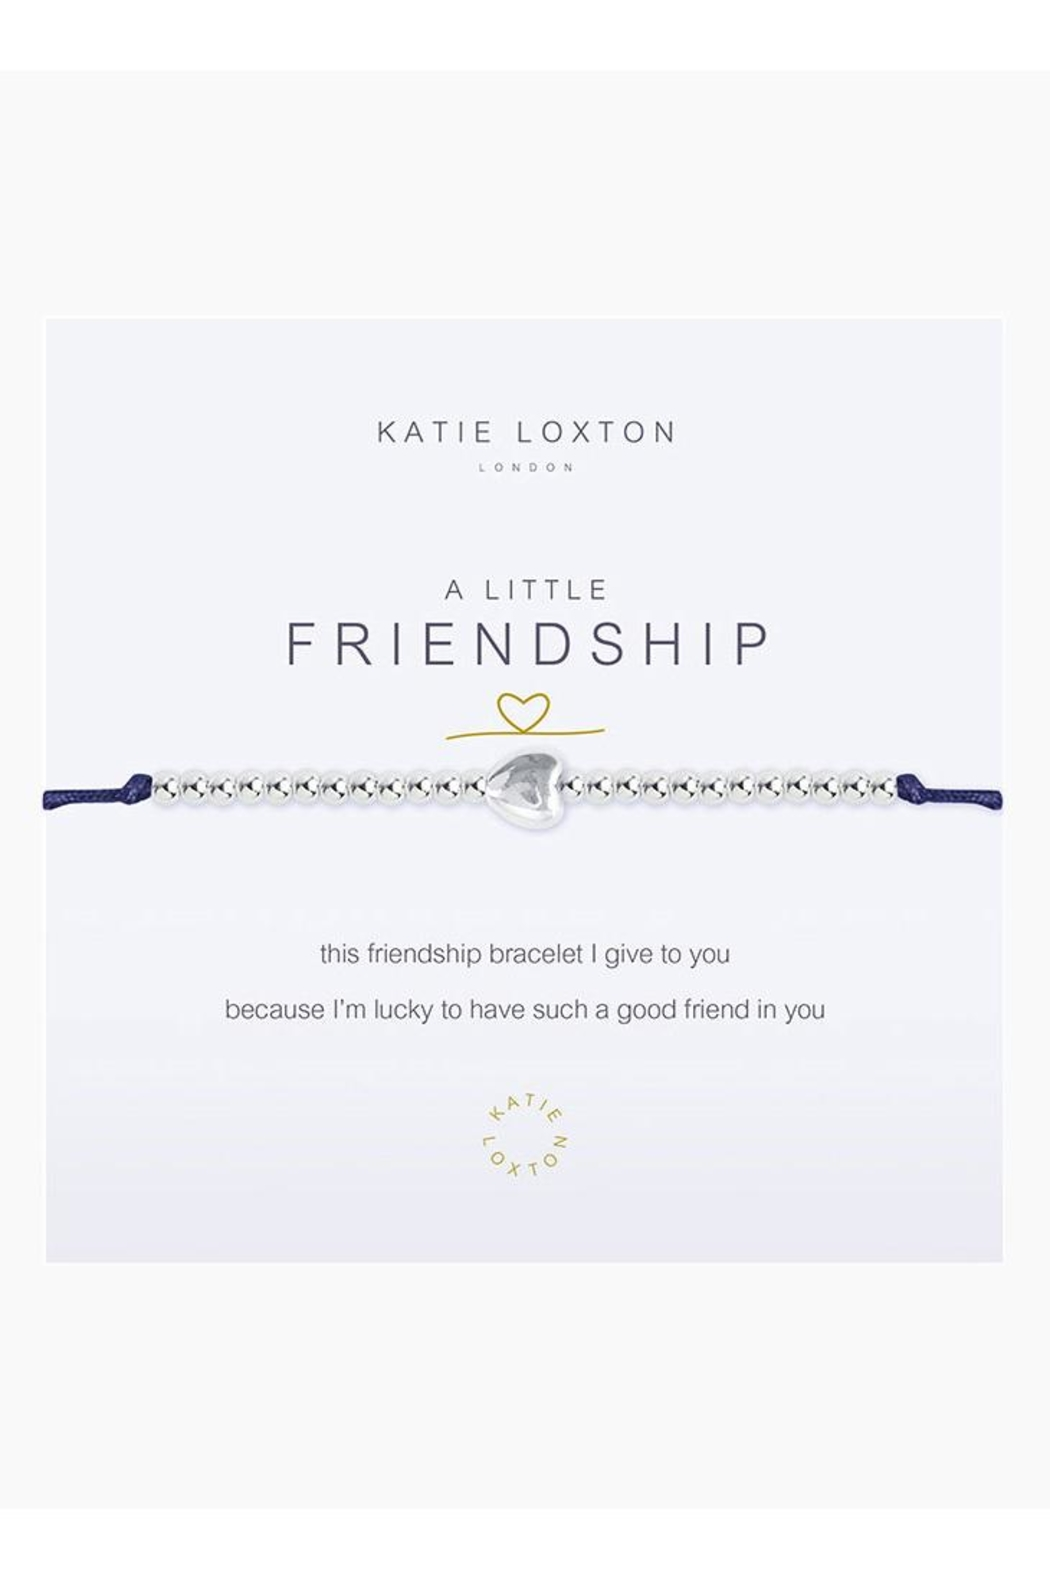 bd254b13c1df8 Katie Loxton Friendship Bracelet from New York by Let's Accessorize ...